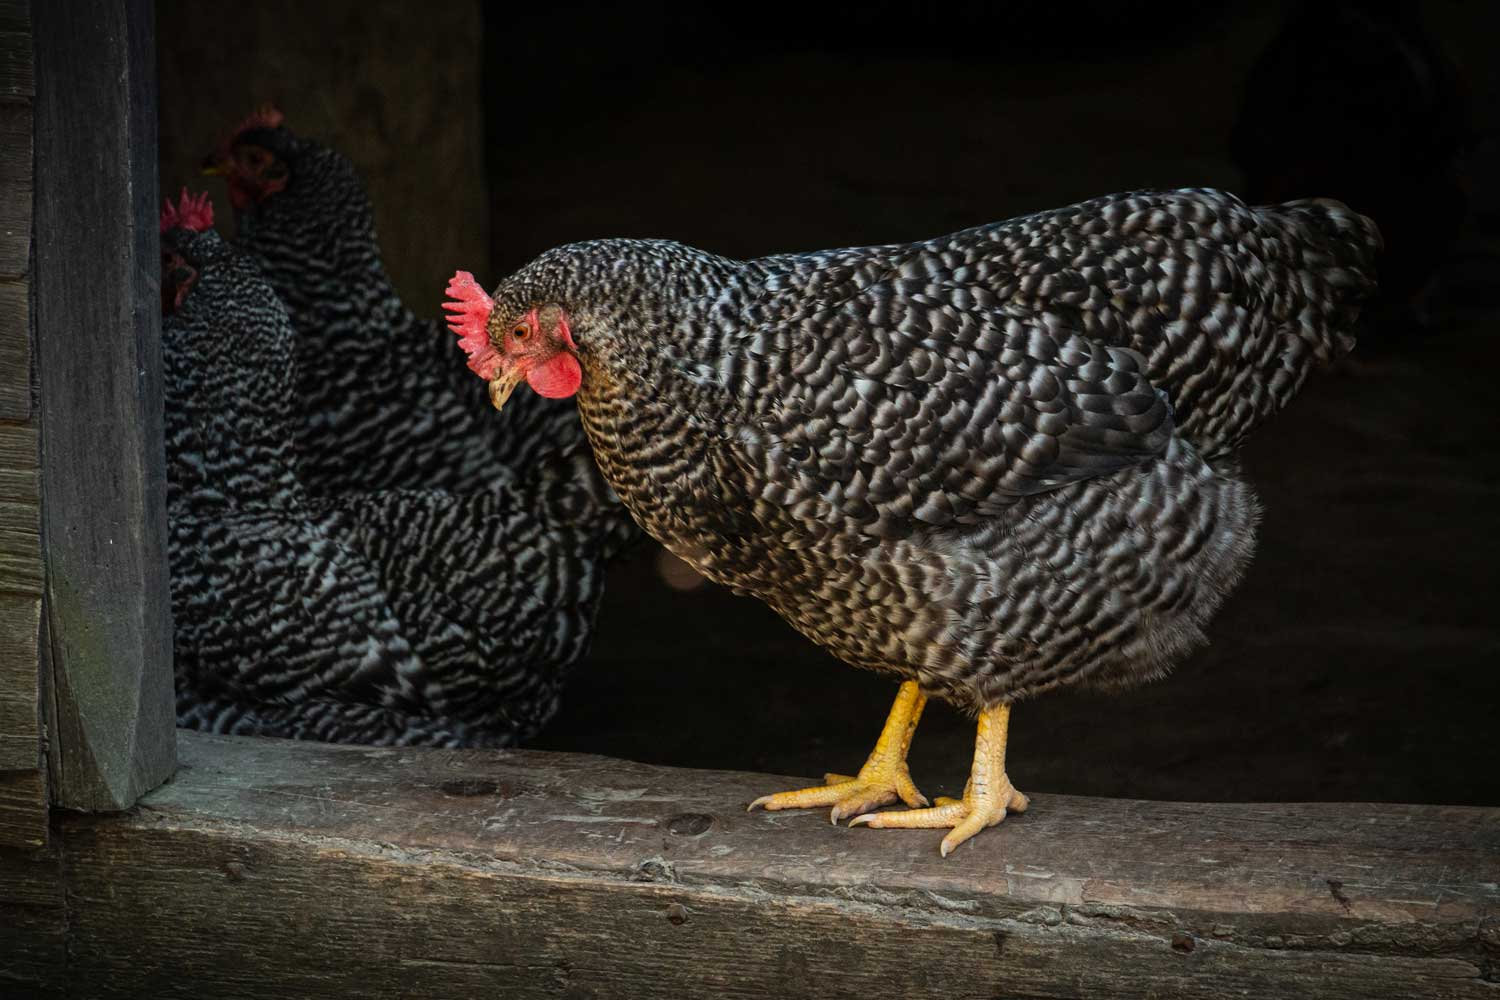 A heritage breed chicken stands to welcome guests at the main house door